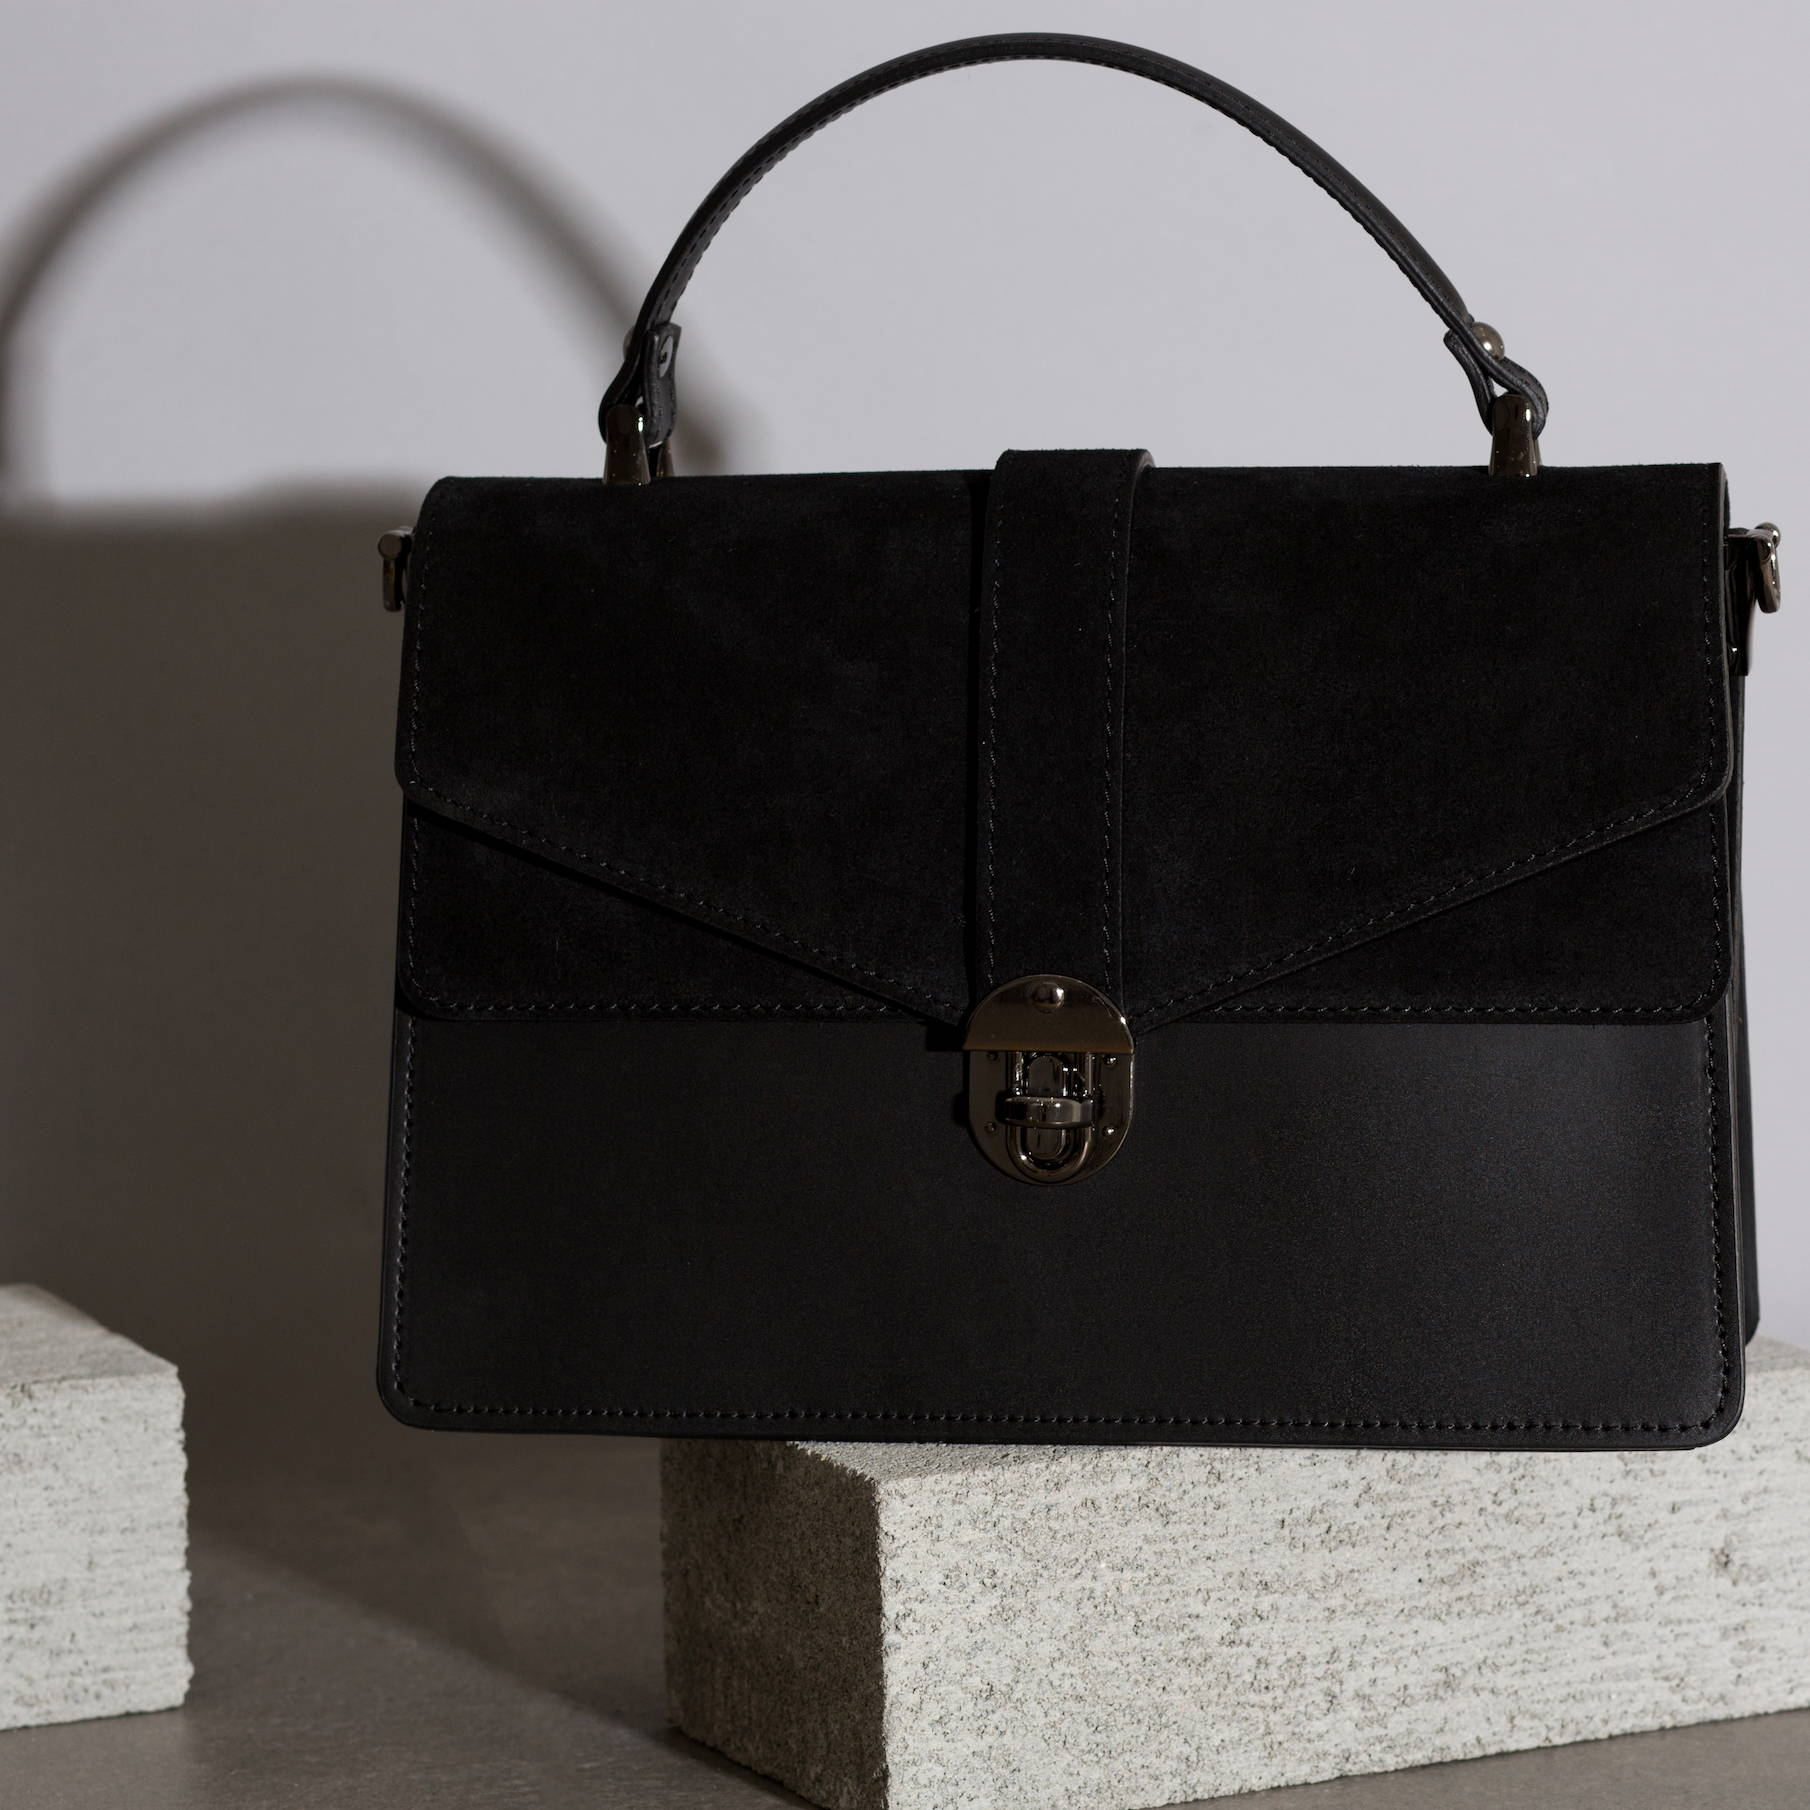 VESTIRSI leather handbag handmade in Italy GRACE crossbody purse bag in black Italian leather and suede